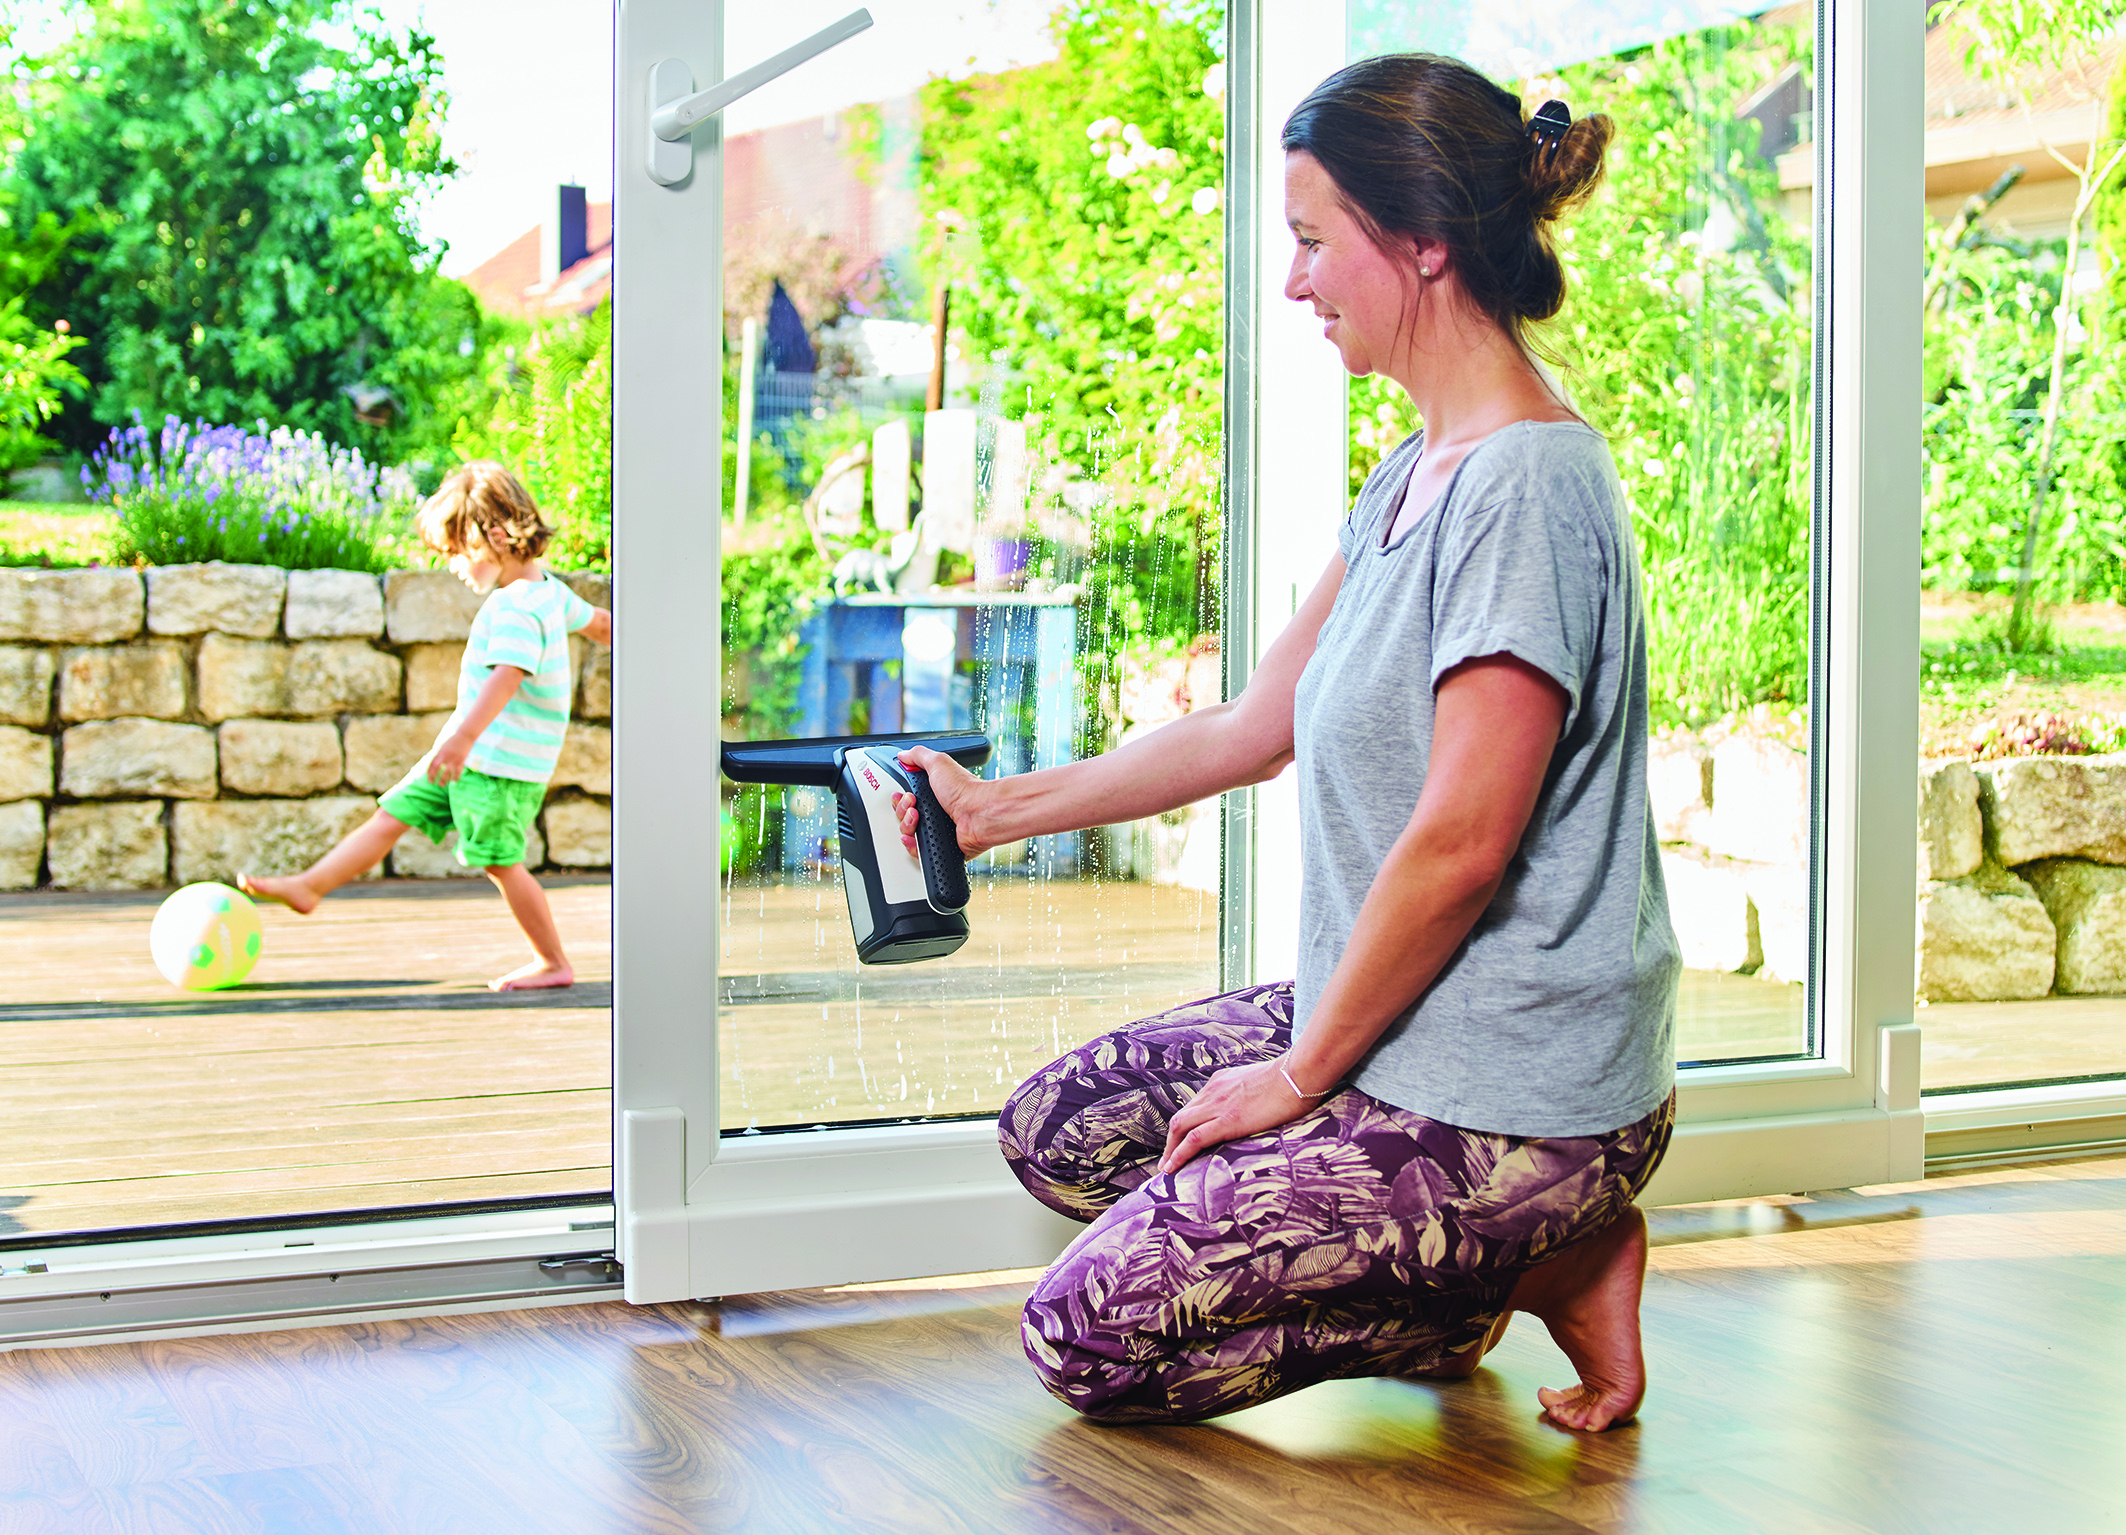 Window cleaning made easy: GlassVac – first cordless window vacuum from Bosch